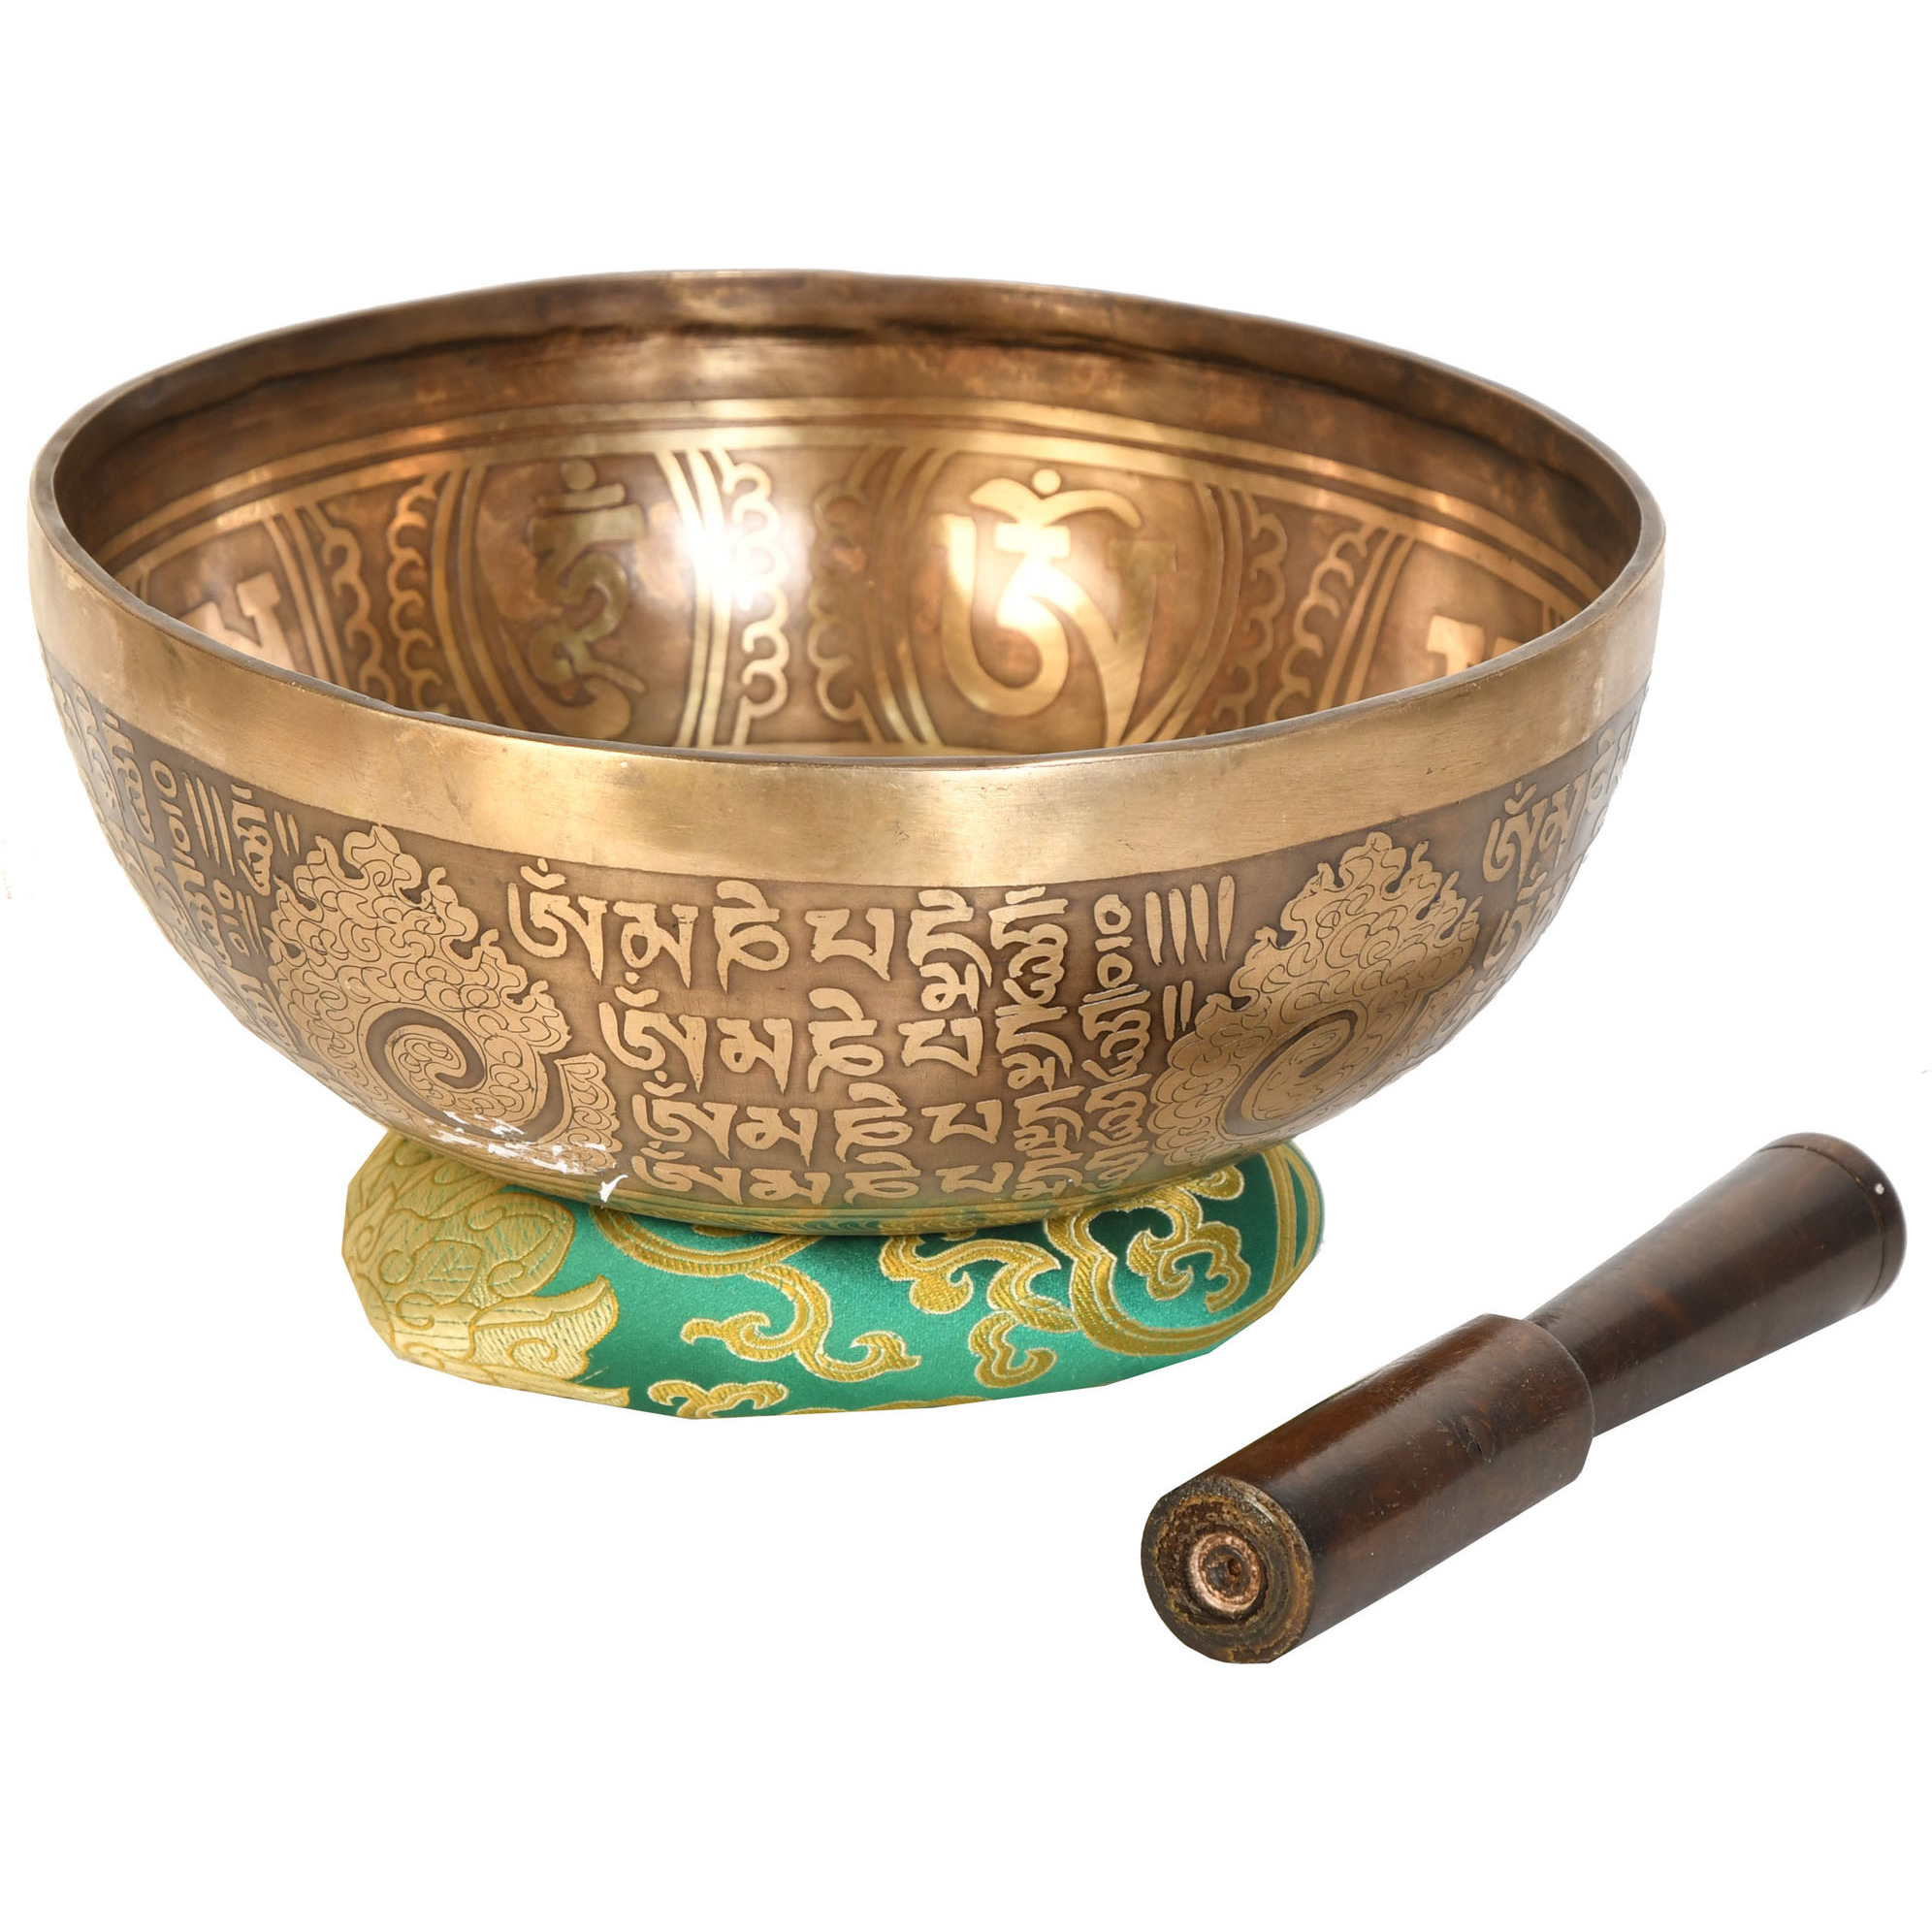 Superfine Singing Bowl with Kundalini Chakras and Auspicious Mantras Inside - Tibetan Buddhist (Made in Nepal)